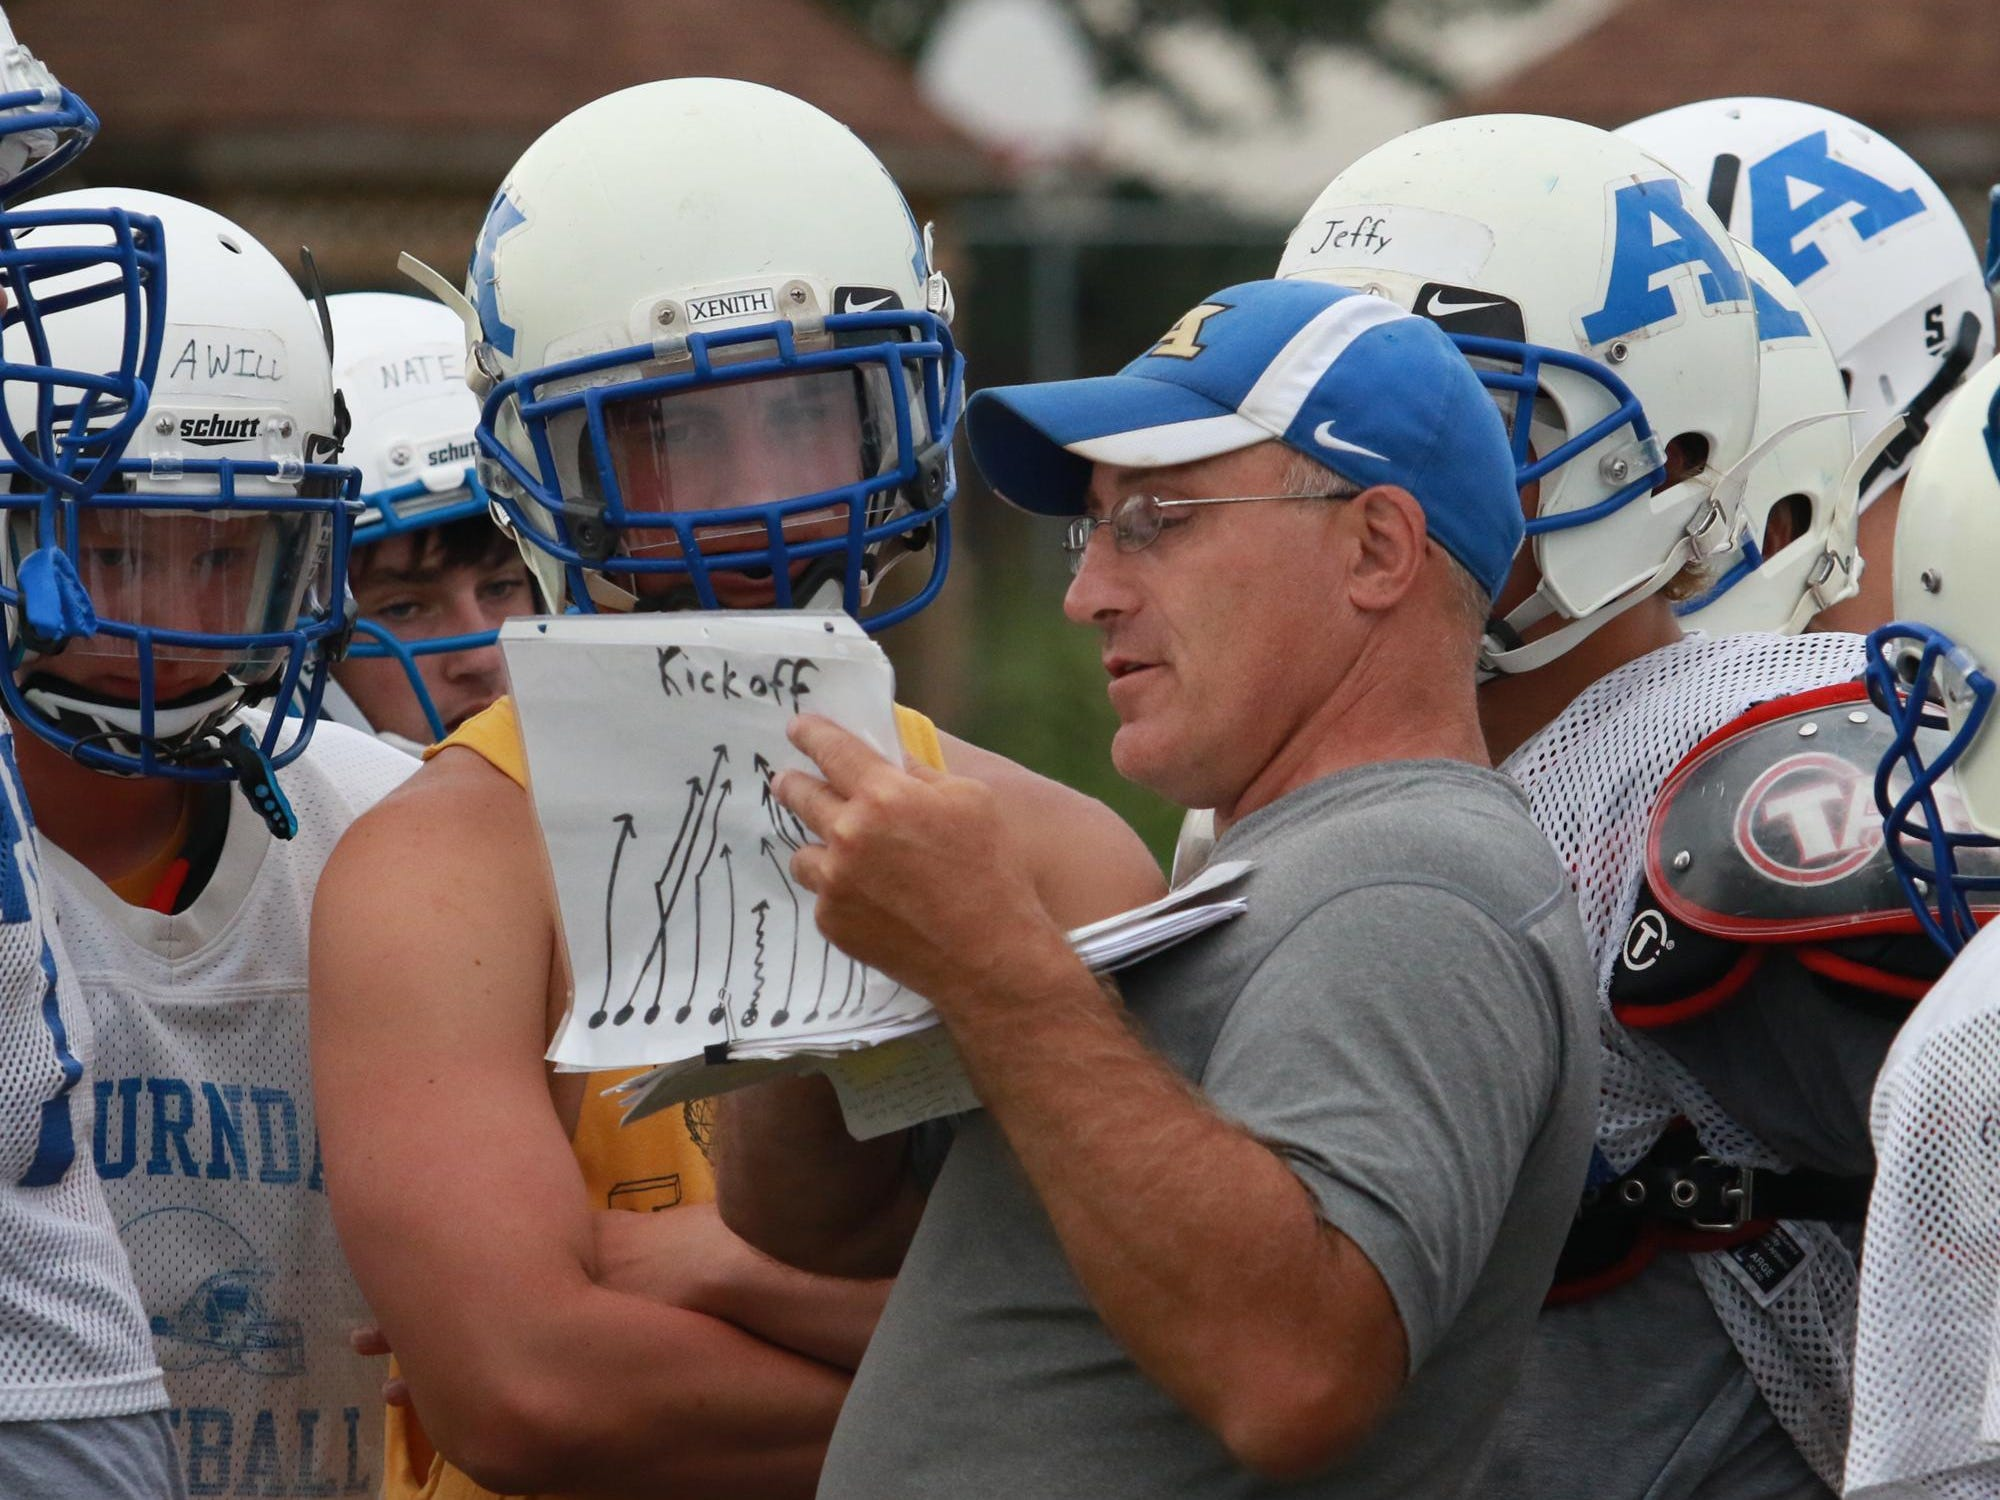 Players crowd around special teams coach John Karl as they work on kick-offs during practice at Auburndale, Aug. 7.